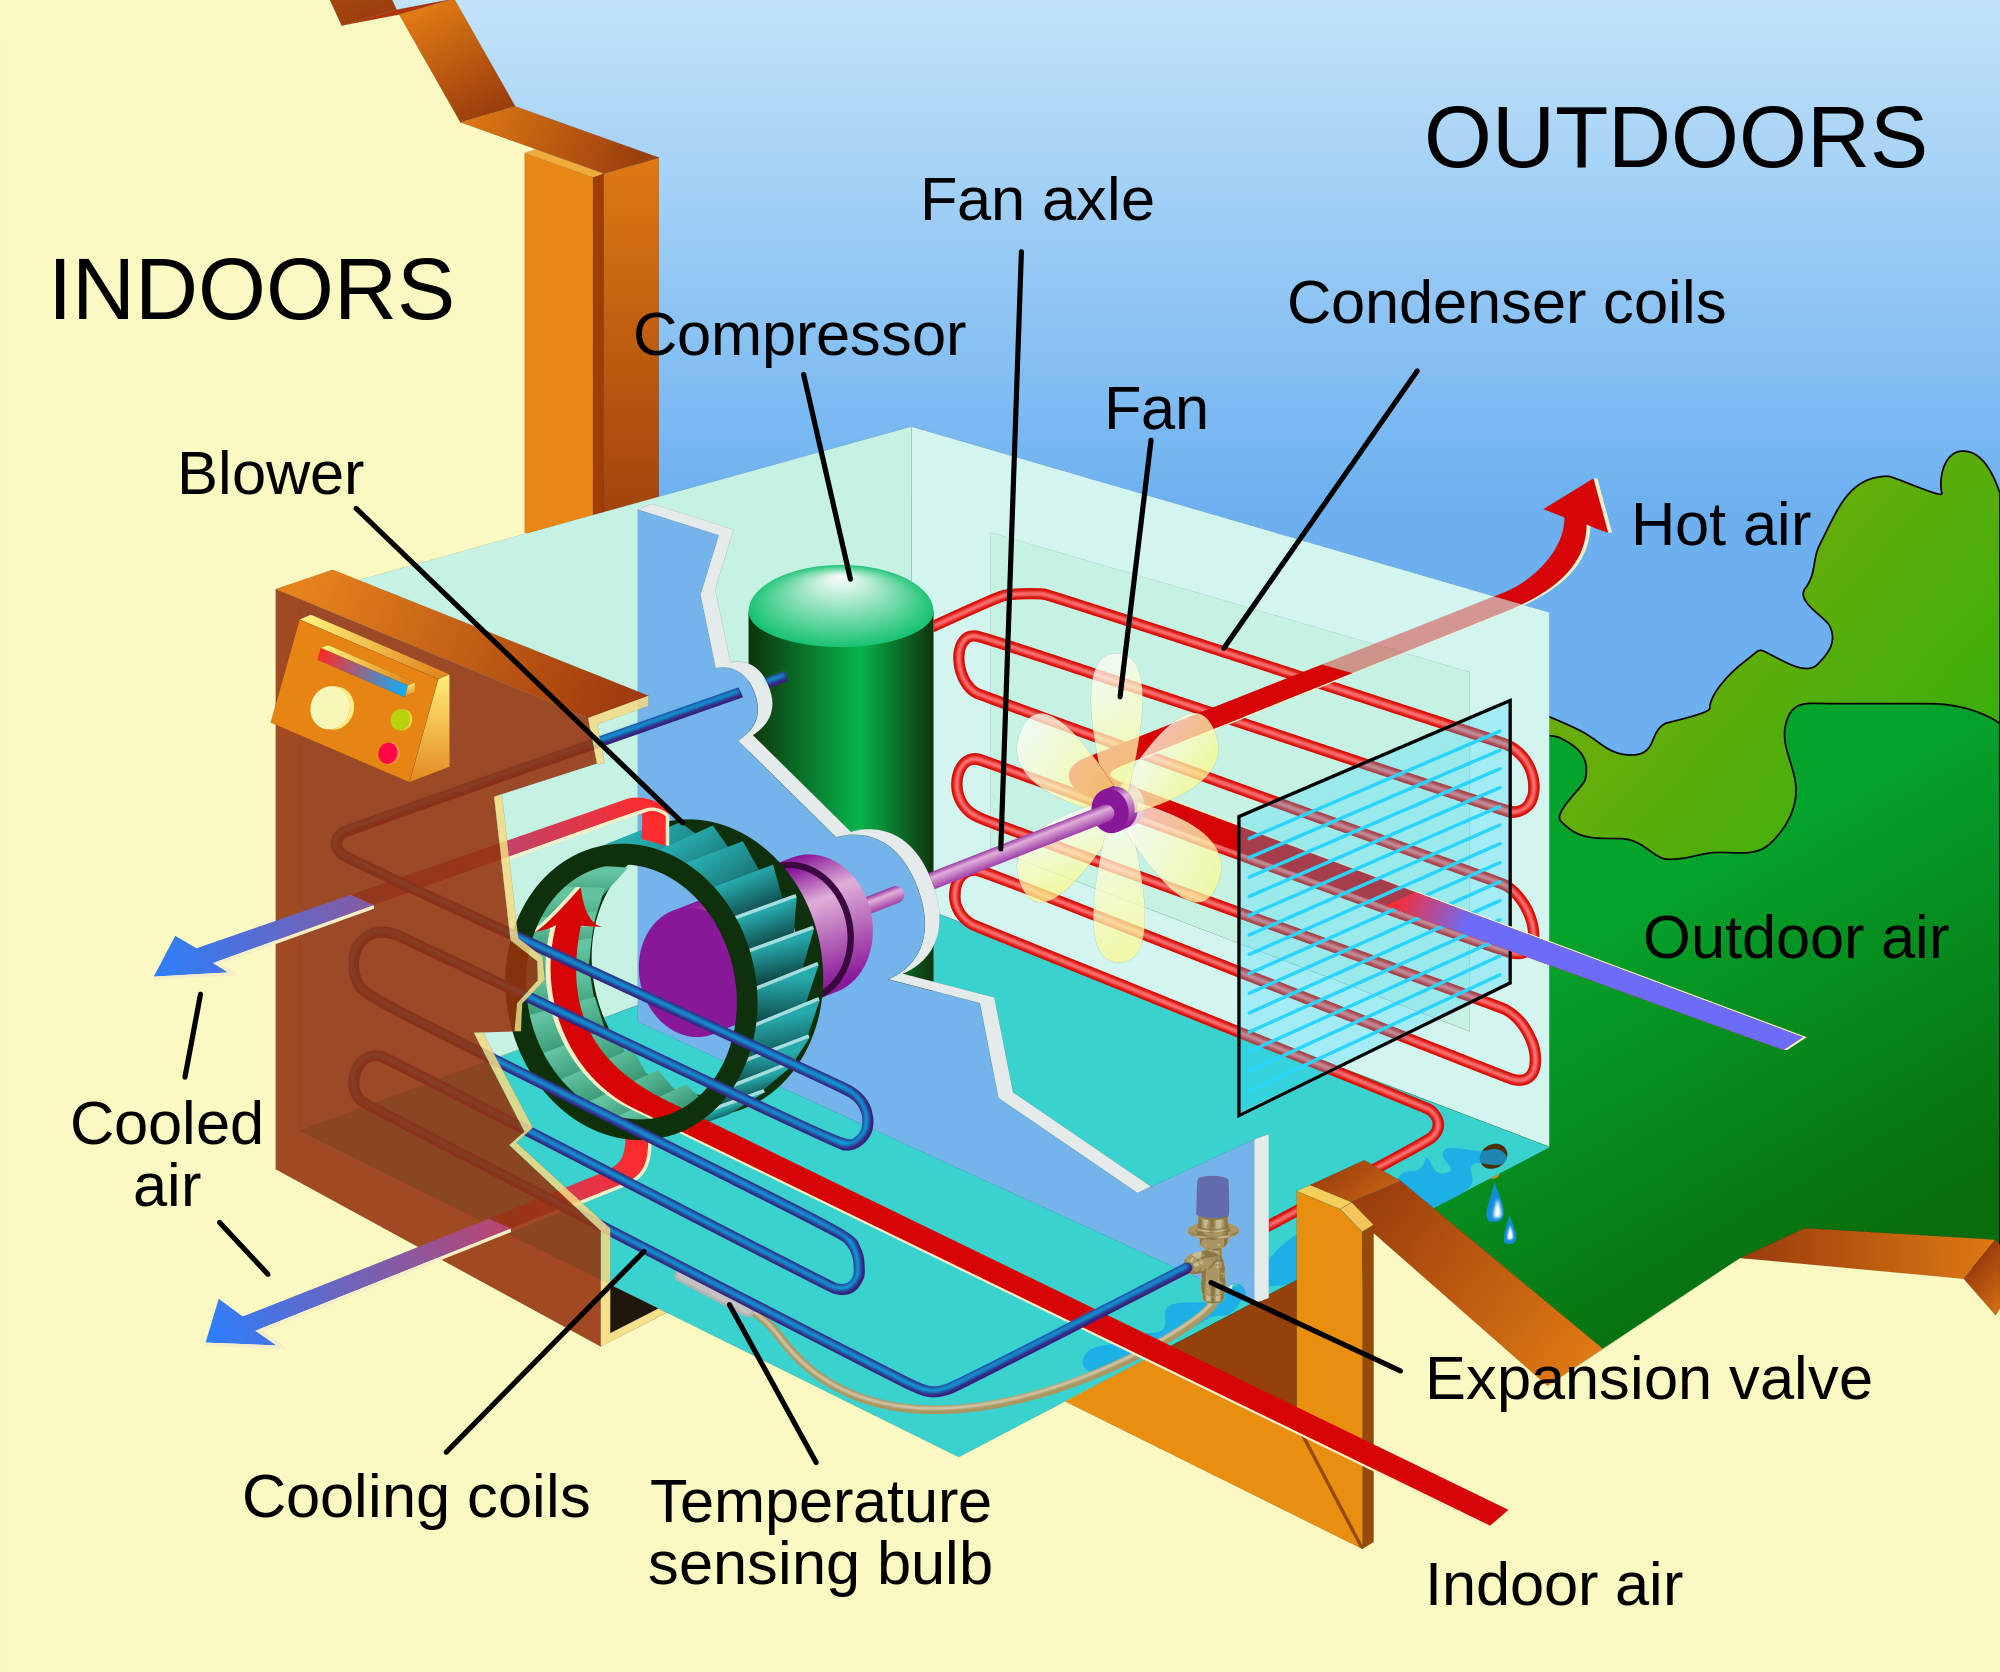 10 Things To Know About Your Air Conditioner | RAMAC Electrical ...